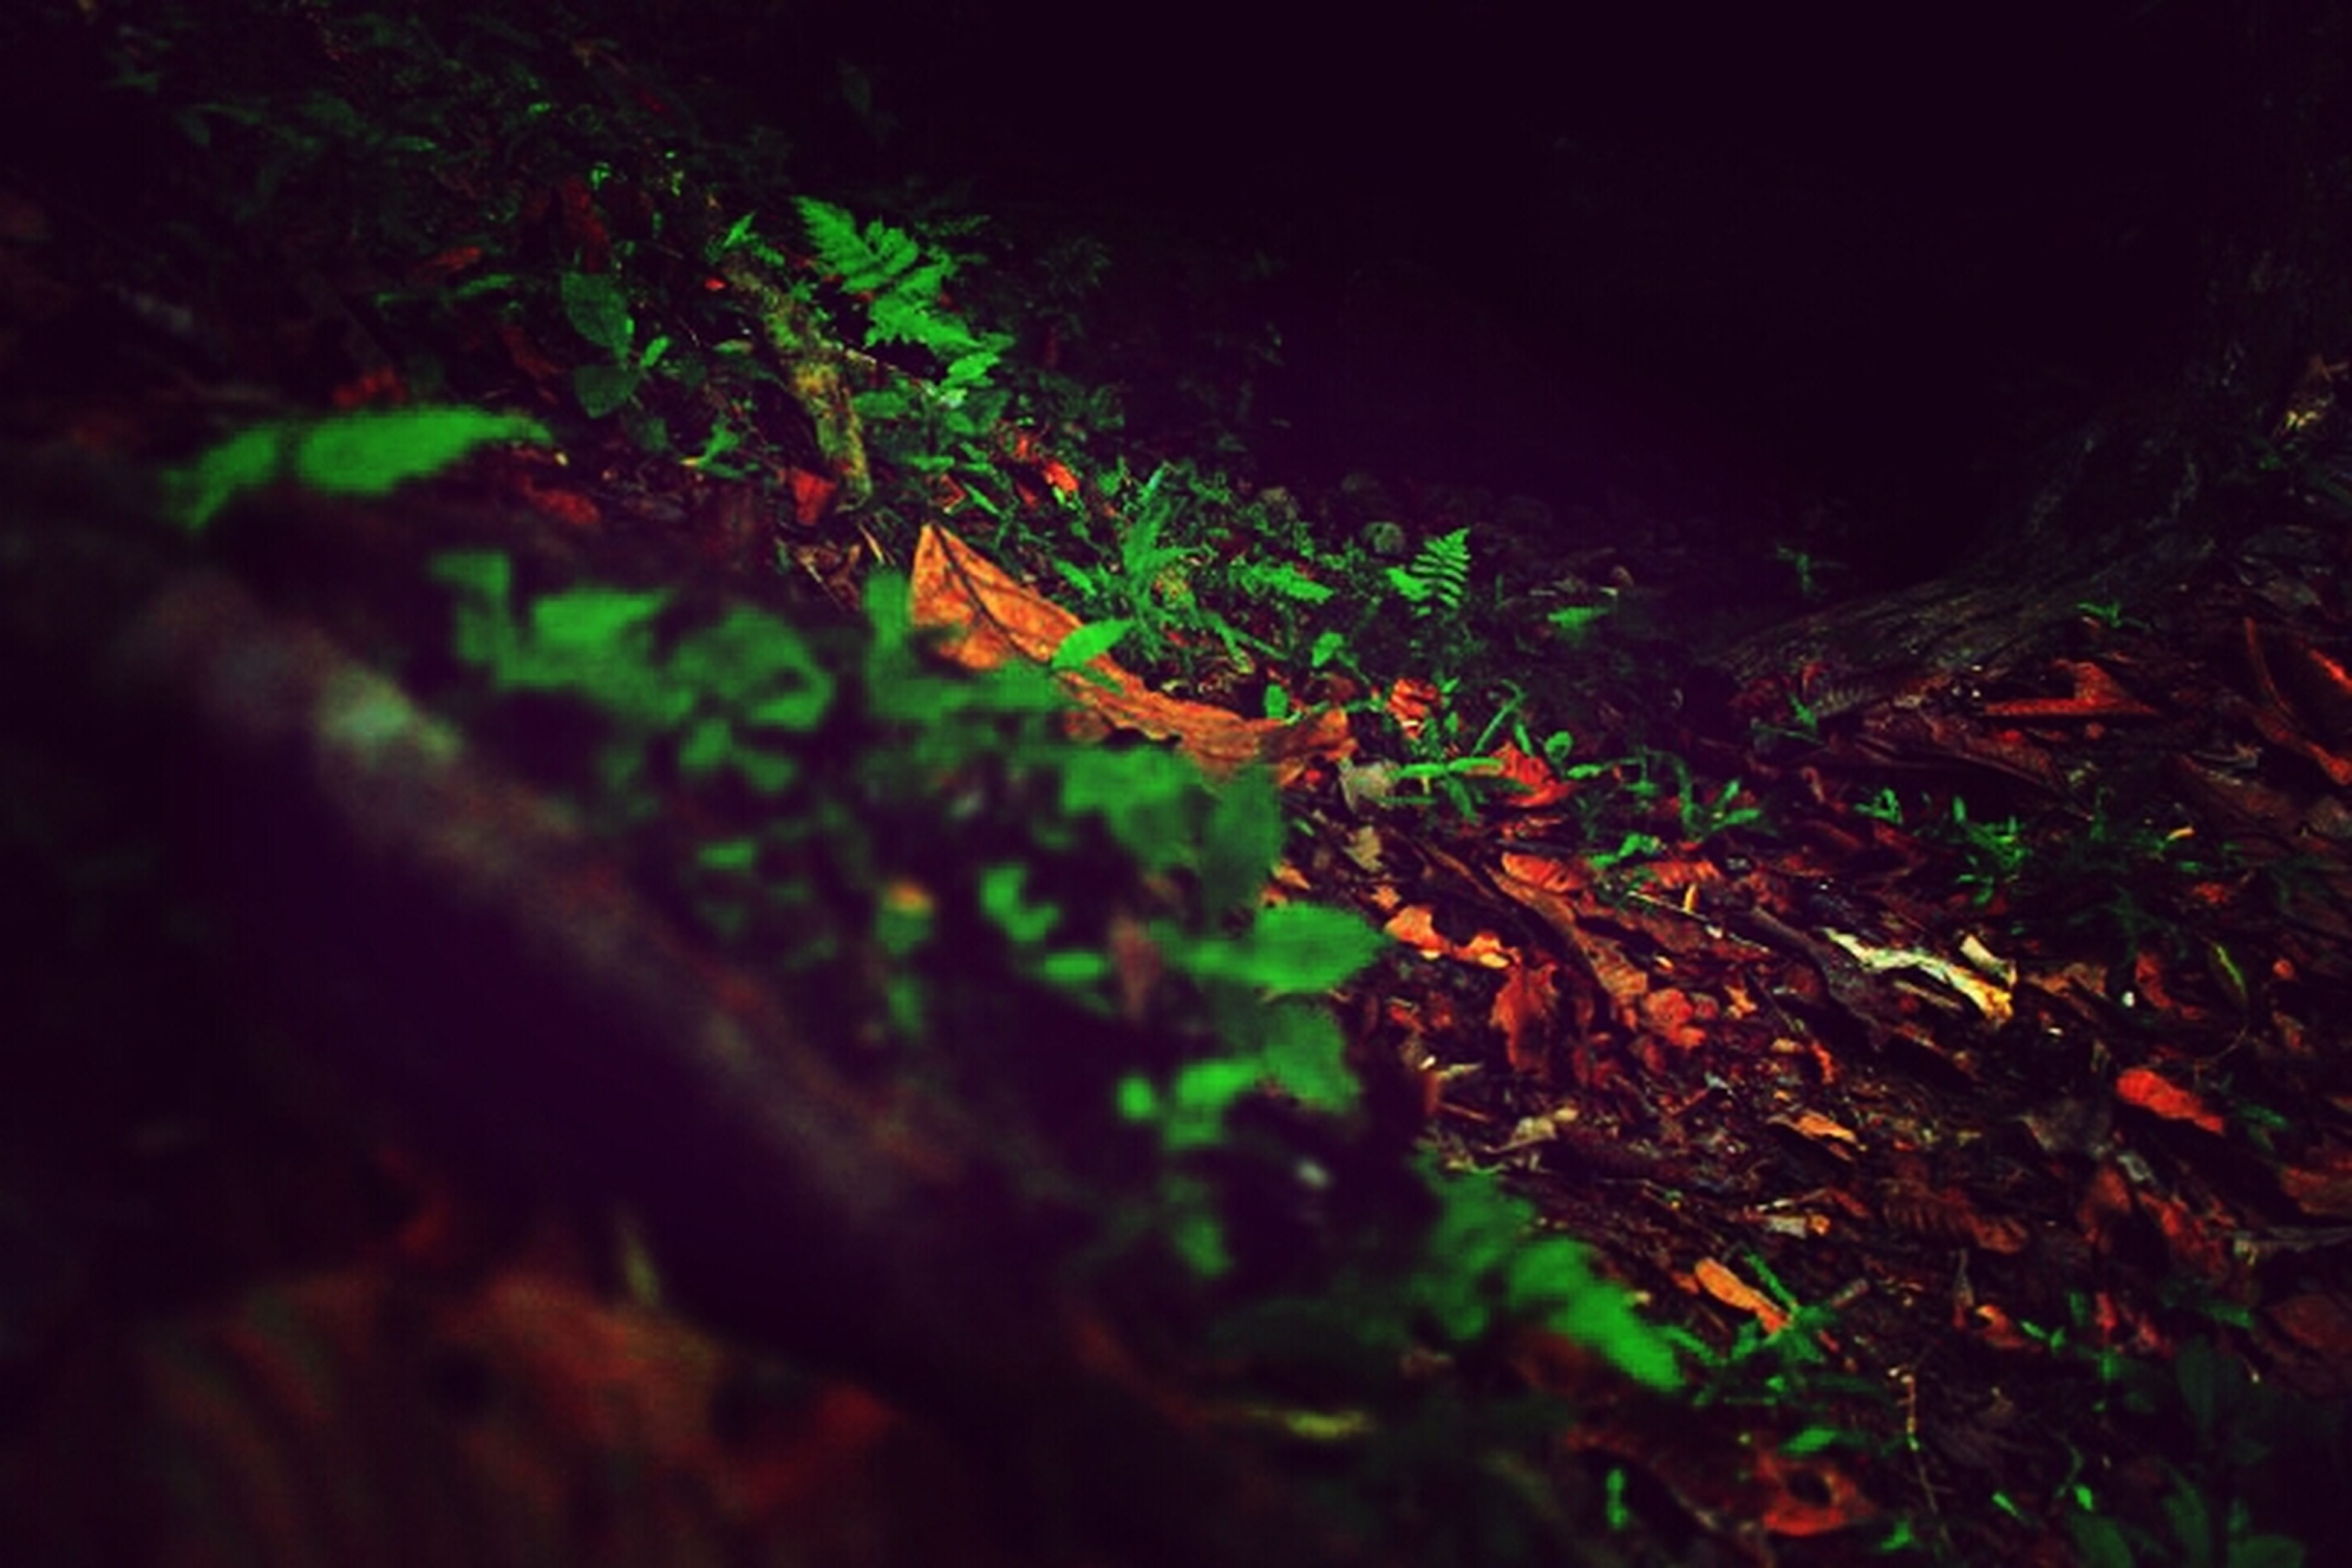 growth, plant, night, leaf, nature, green color, growing, tranquility, high angle view, outdoors, selective focus, beauty in nature, no people, sunlight, field, close-up, dark, moss, rock - object